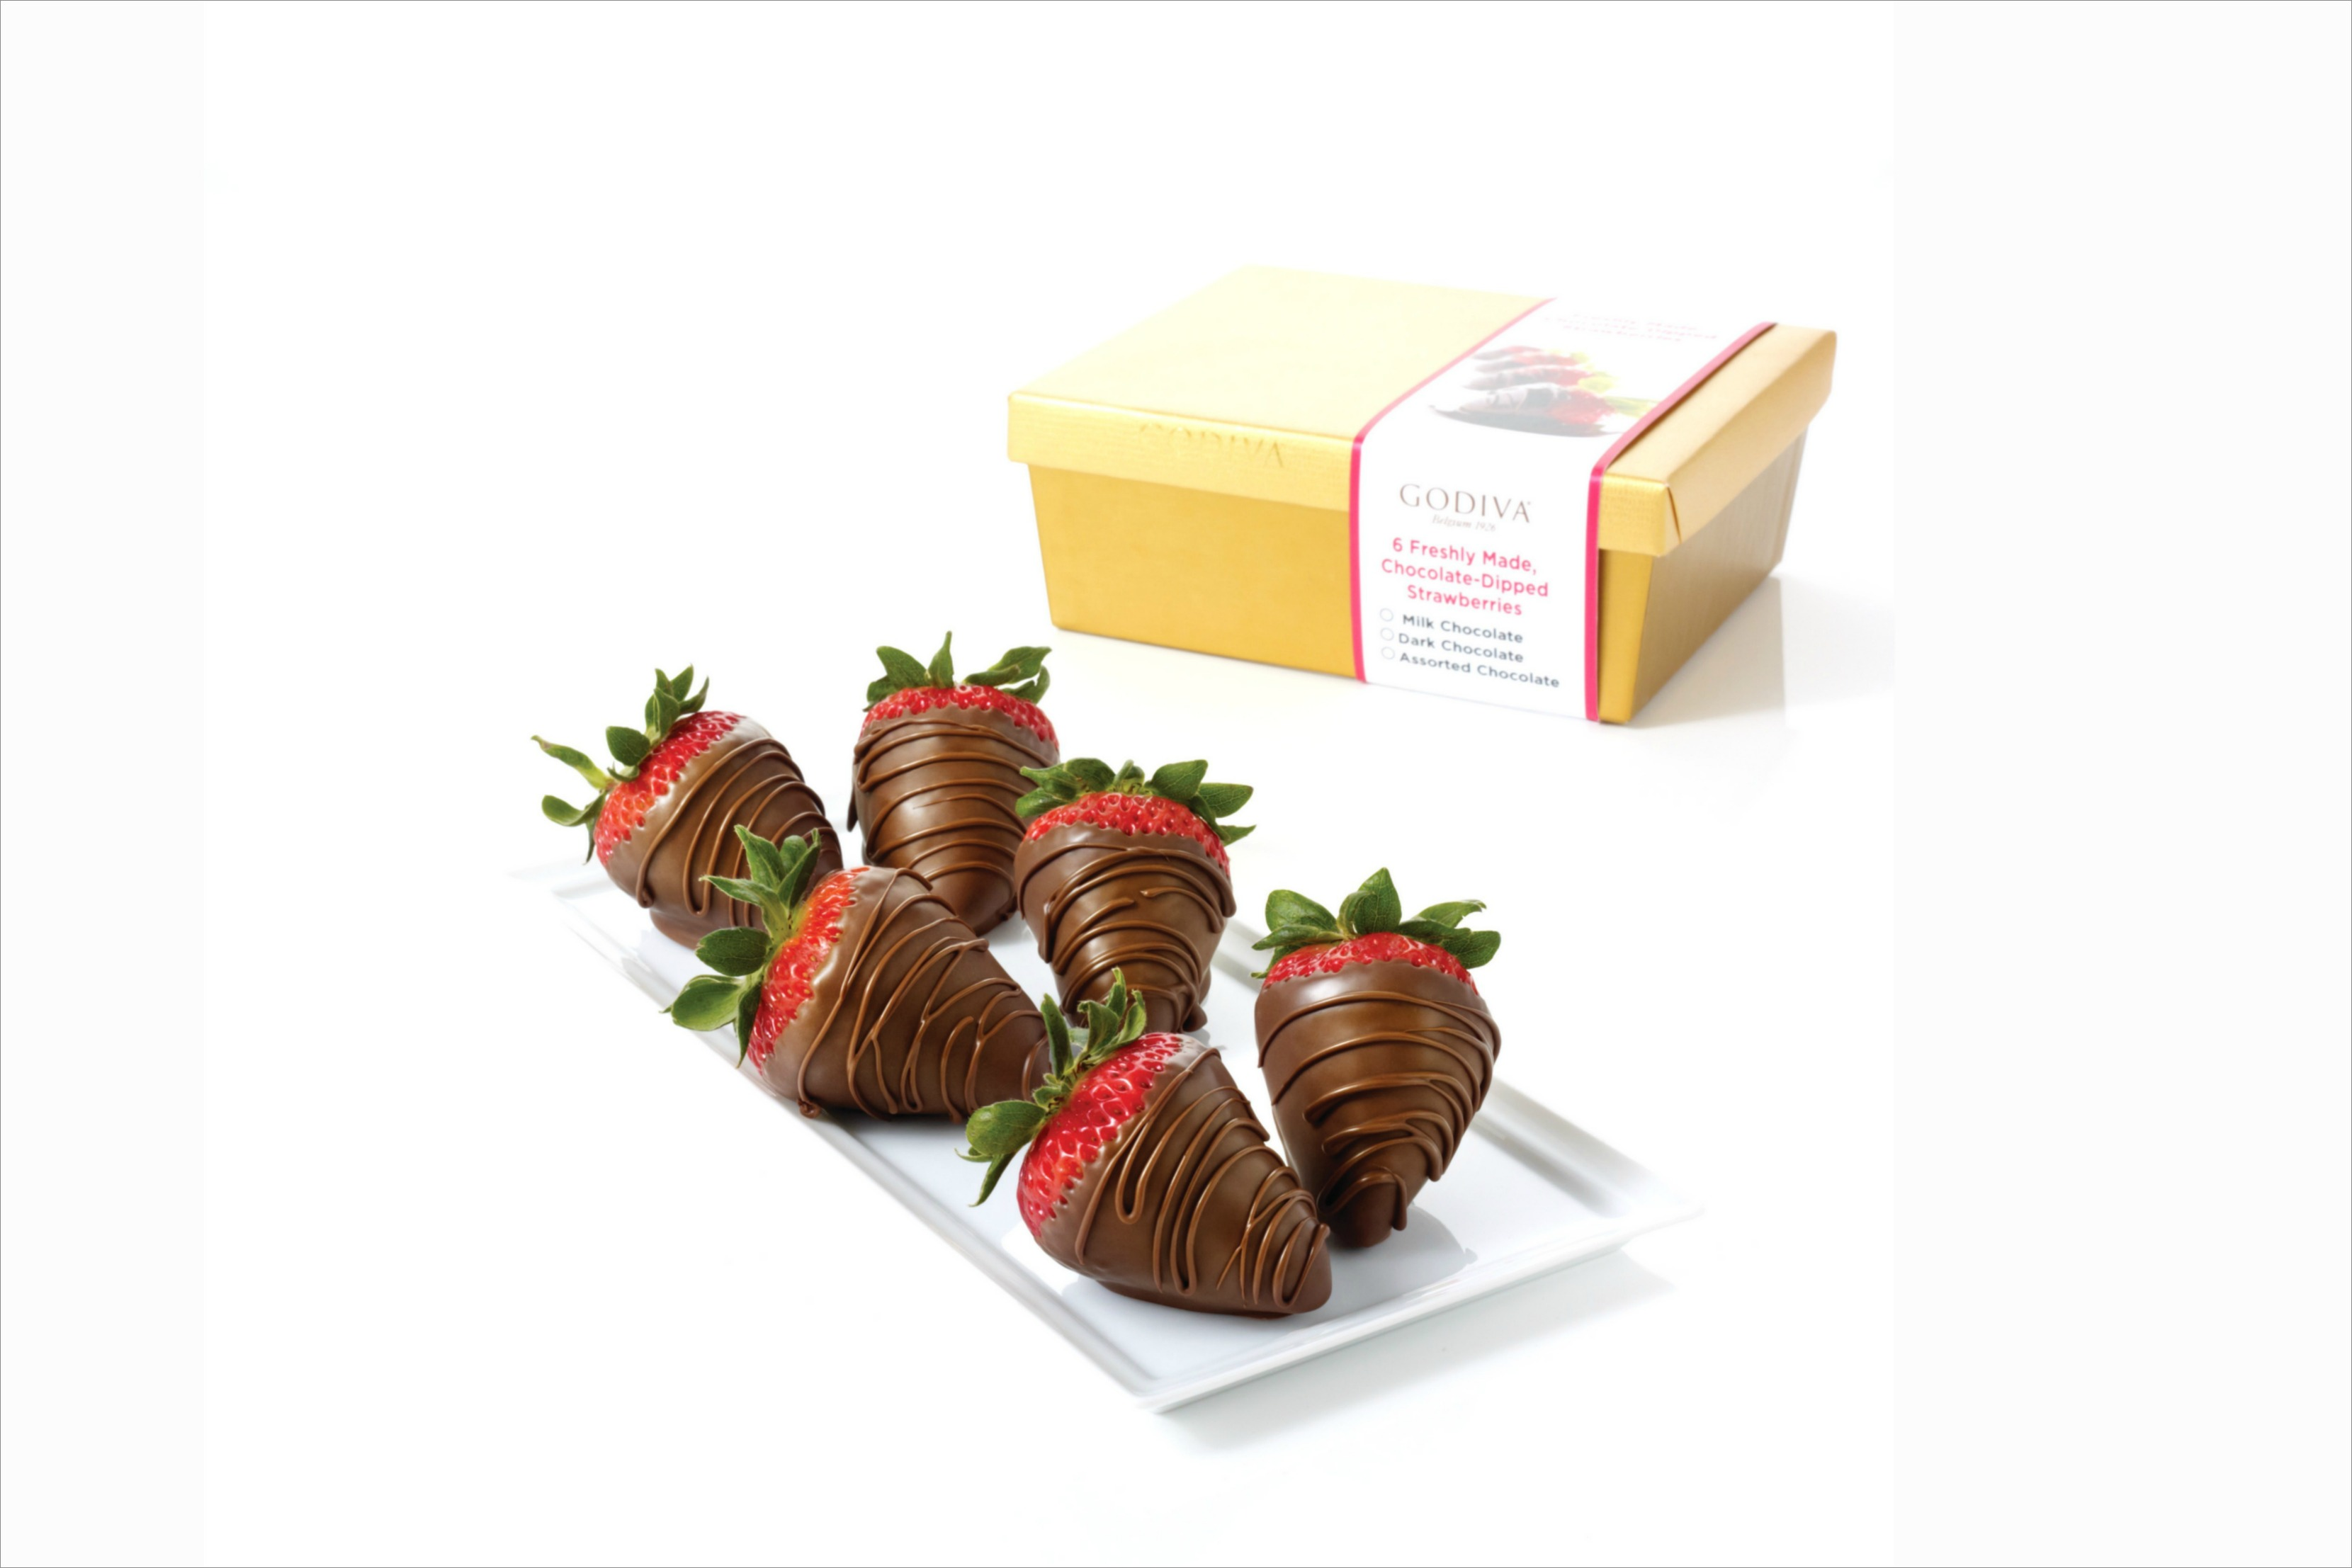 Godiva Valentine's Day chocolate covered strawberries